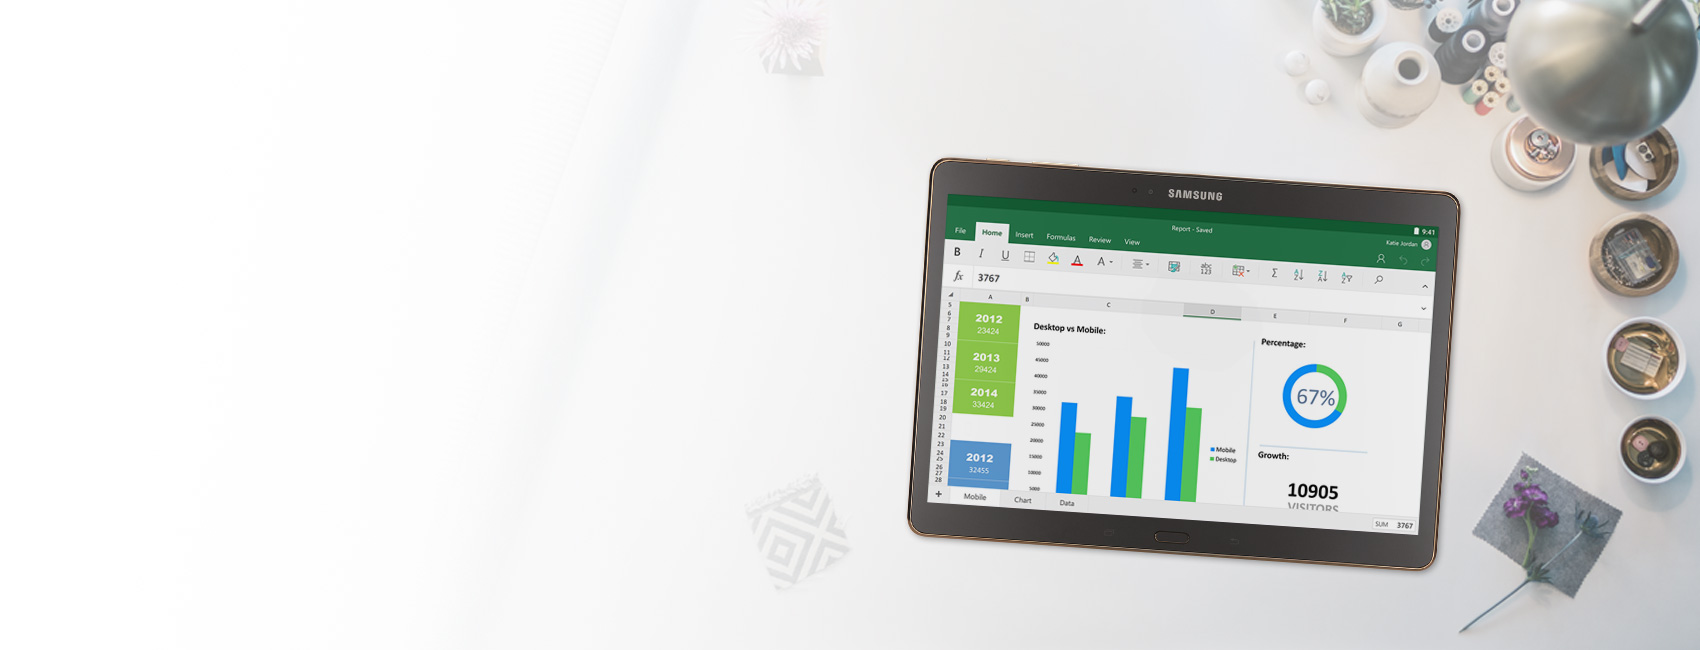 Ediblewildsus  Splendid Office Mobile Apps For Android  Word Excel Powerpoint With Goodlooking A Tablet Displaying Charts In An Excel Report With Delightful General Mail Failure Excel  Also Cash Flow Diagram Excel In Addition Excel Convert Time To Number And Create A Dashboard In Excel As Well As Formula For Sum In Excel Additionally Excel Formula To Count Cells From Productsofficecom With Ediblewildsus  Goodlooking Office Mobile Apps For Android  Word Excel Powerpoint With Delightful A Tablet Displaying Charts In An Excel Report And Splendid General Mail Failure Excel  Also Cash Flow Diagram Excel In Addition Excel Convert Time To Number From Productsofficecom